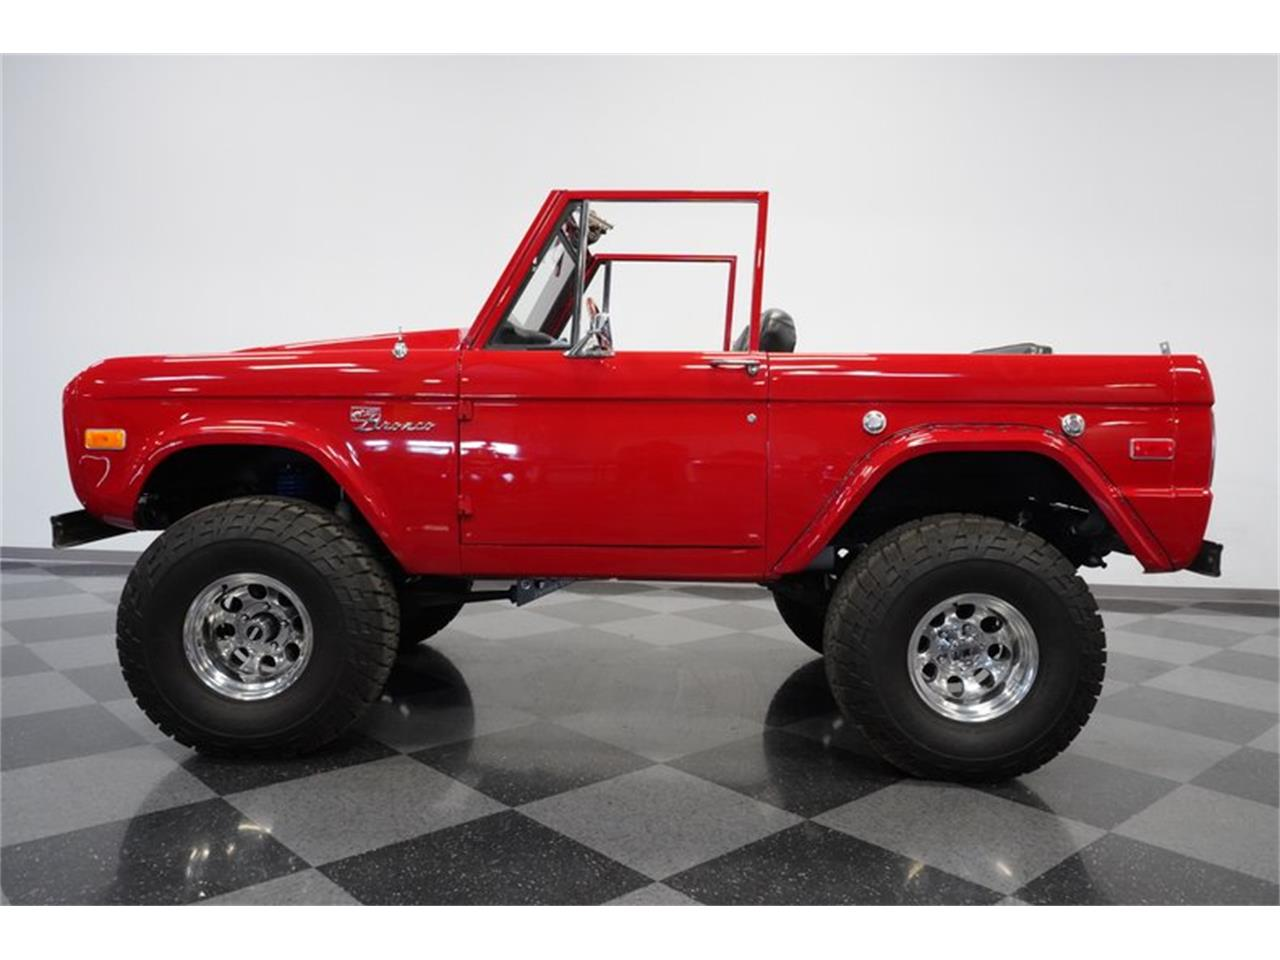 Large Picture of 1975 Ford Bronco located in Arizona - $43,995.00 Offered by Streetside Classics - Phoenix - Q516